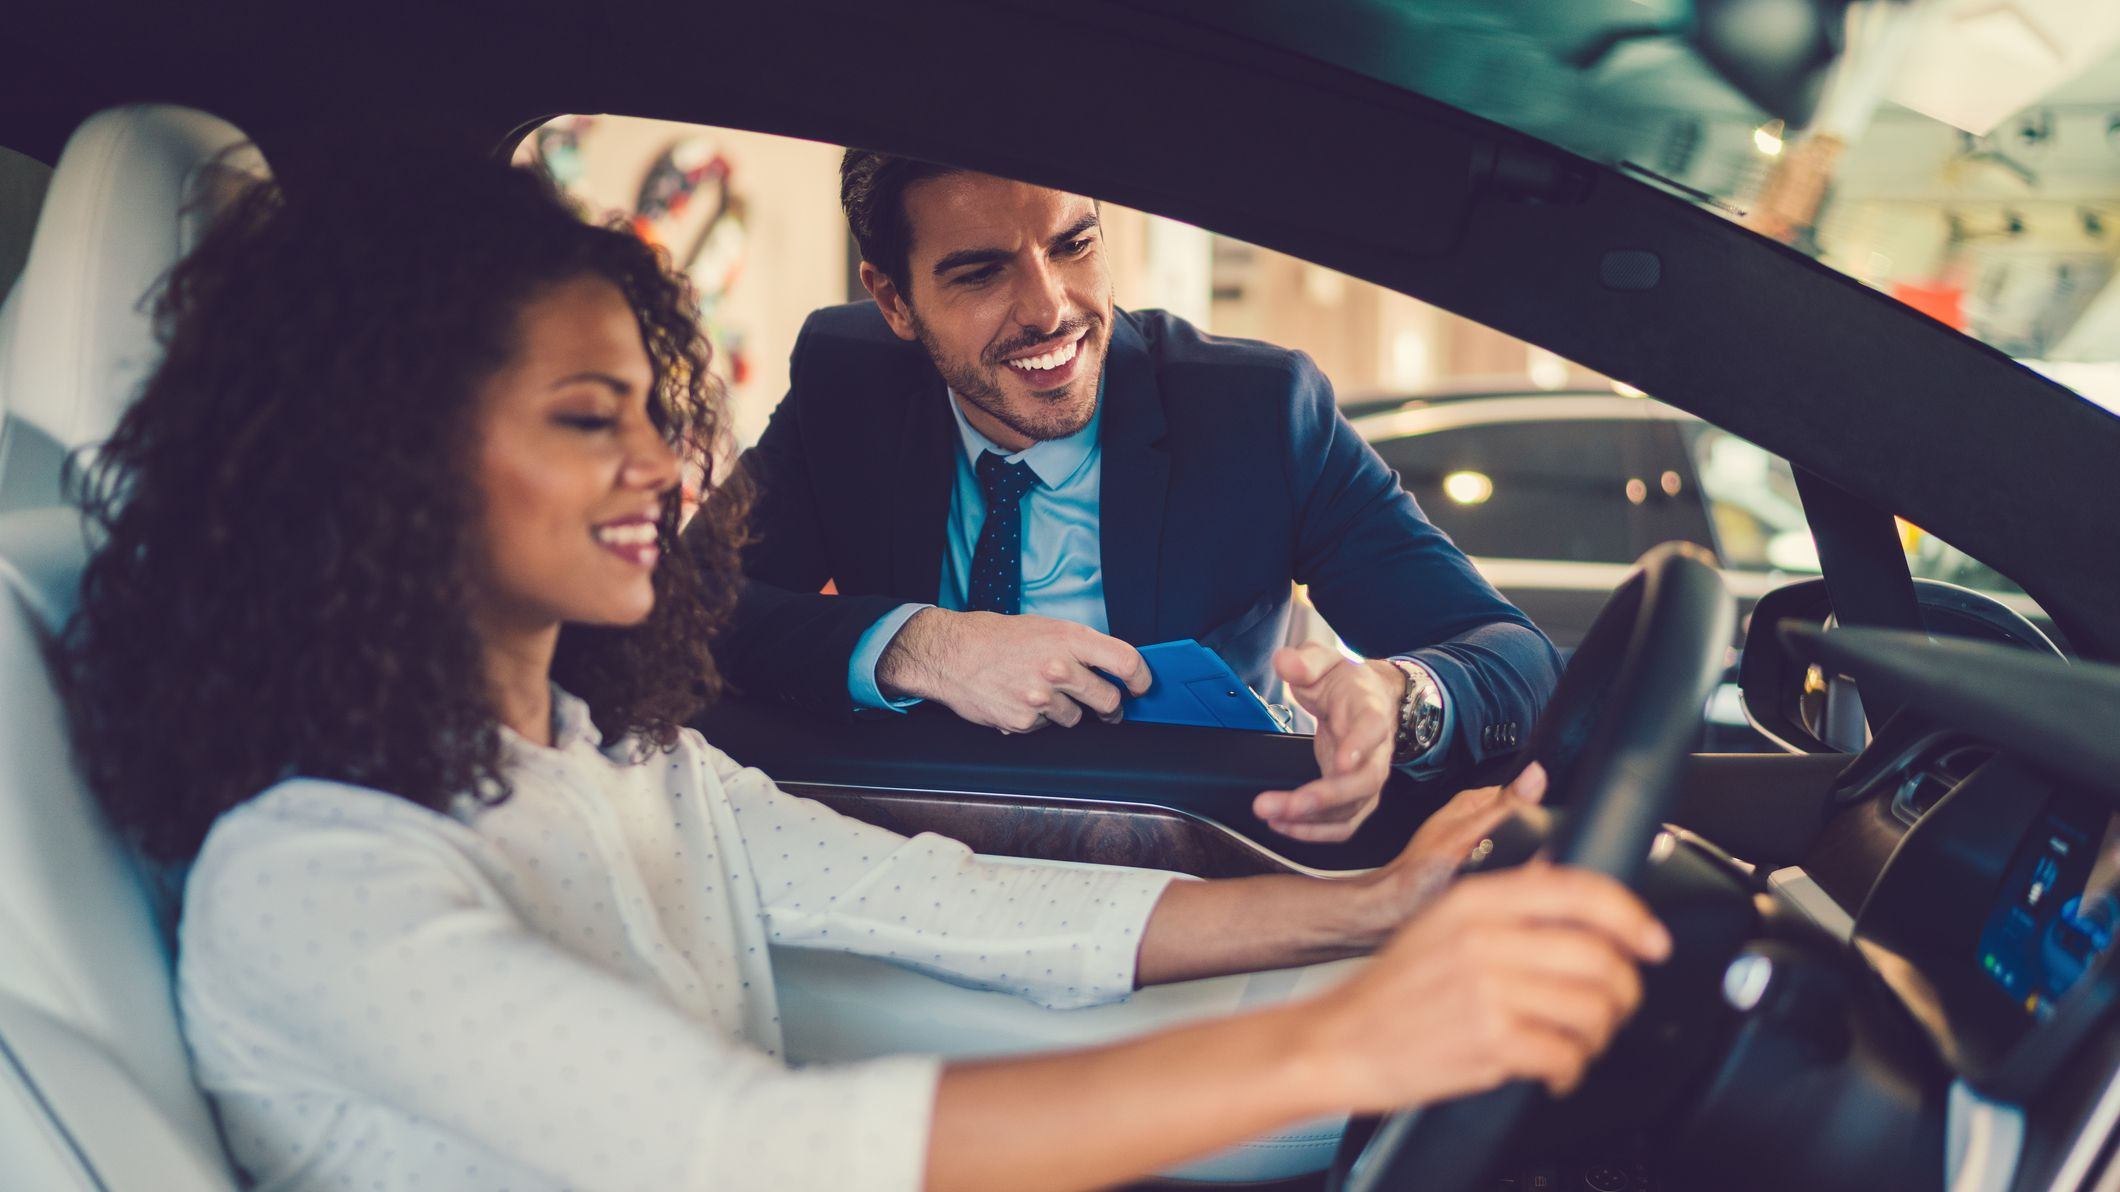 Prepare Yourself For Your Next Auto Investment